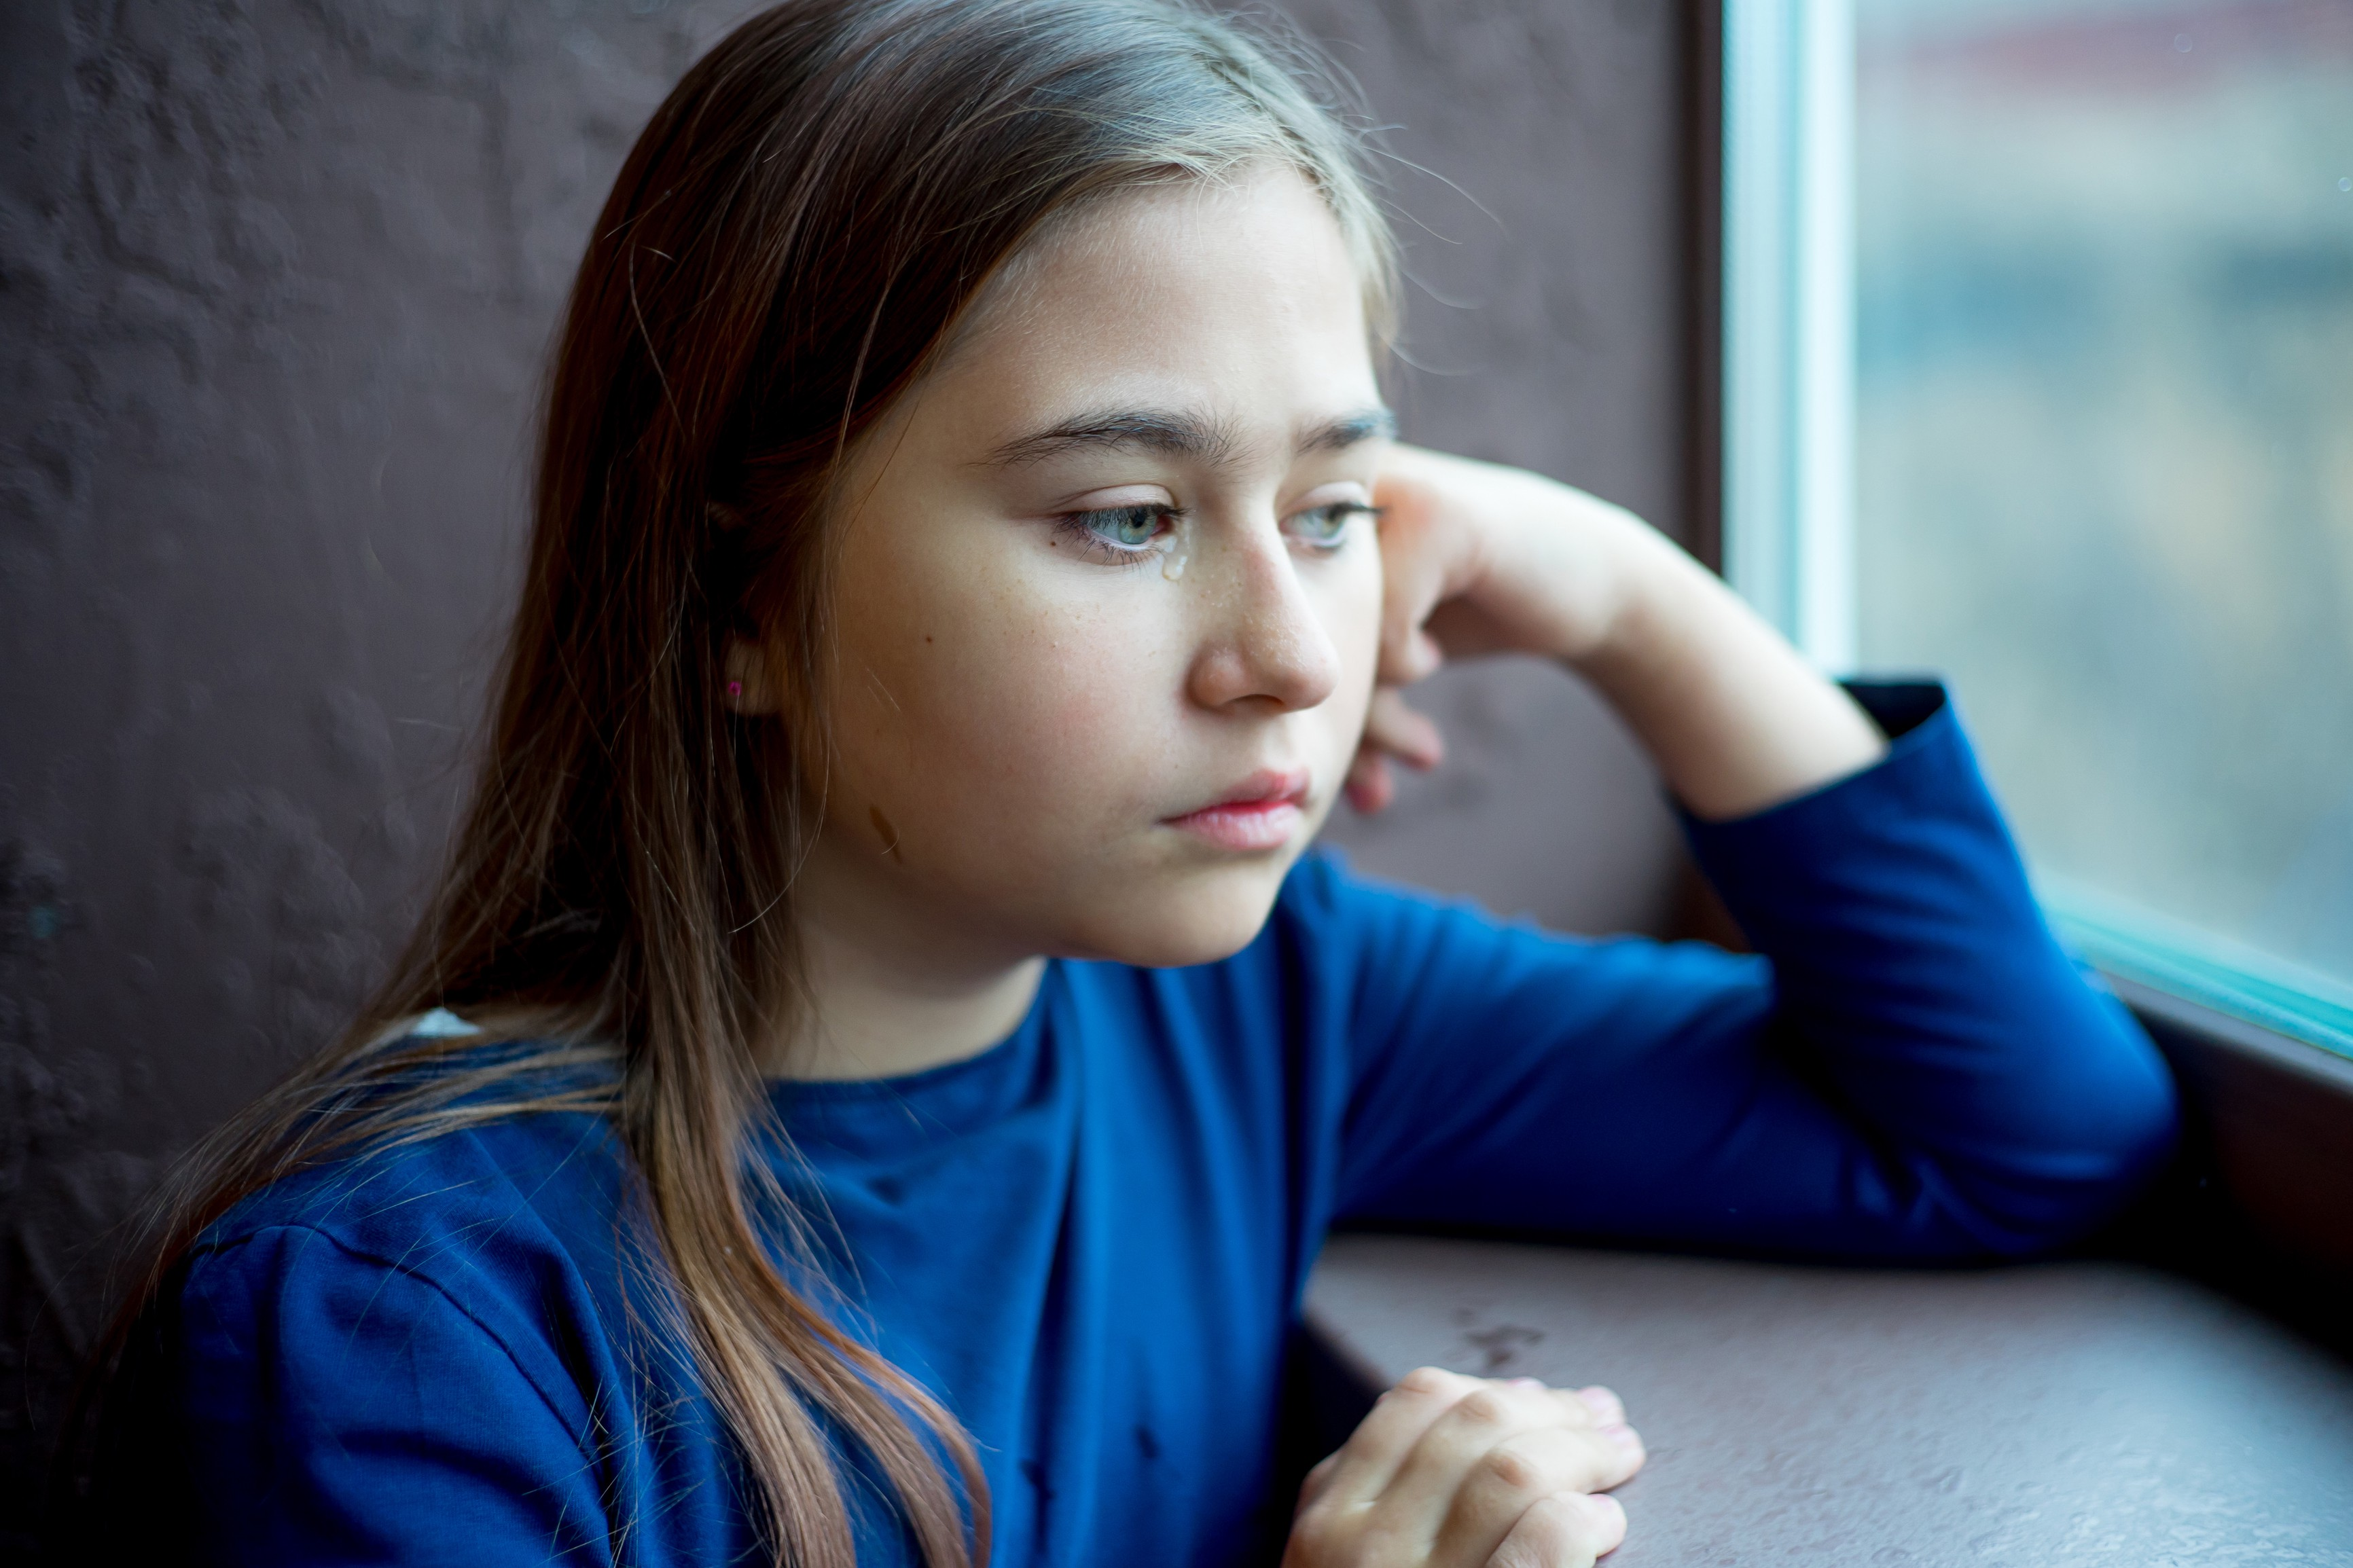 Little girl sad and alone staring out of window